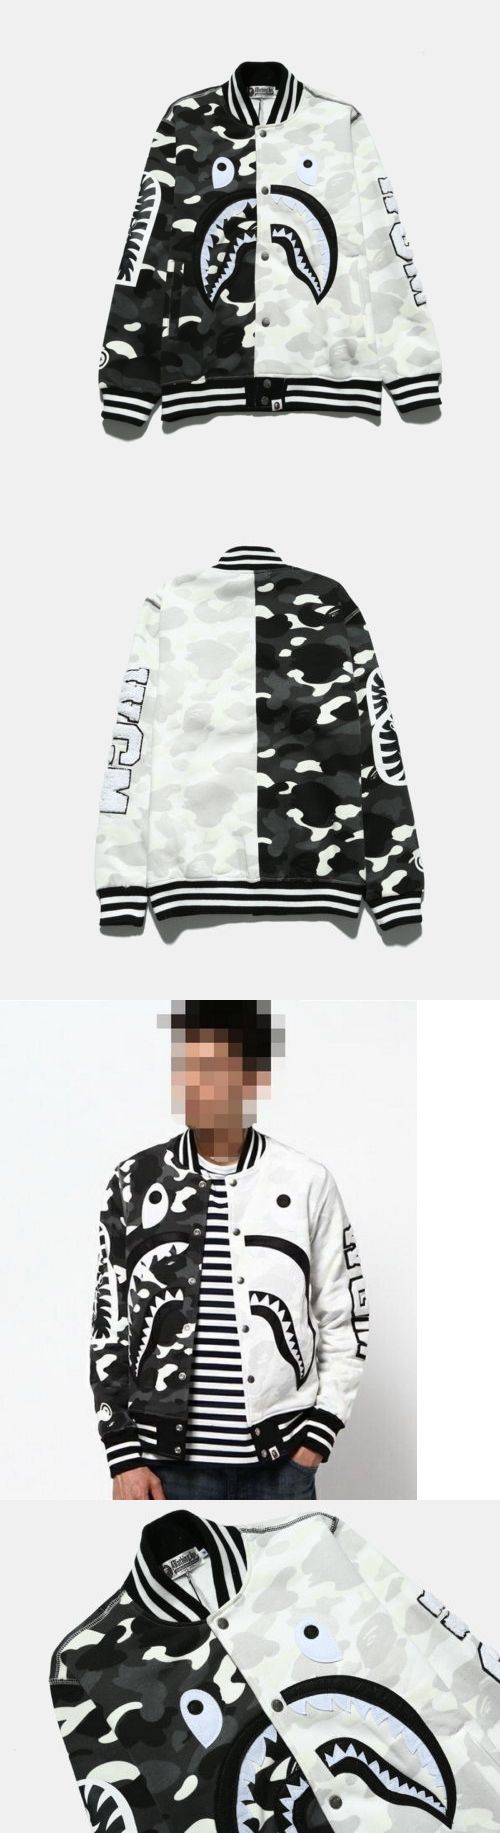 Outerwear 155195: Bape A Bathing Ape Shark Mouth Unisex Button Casual Sports Baseball Coat Jacket -> BUY IT NOW ONLY: $47.94 on eBay!